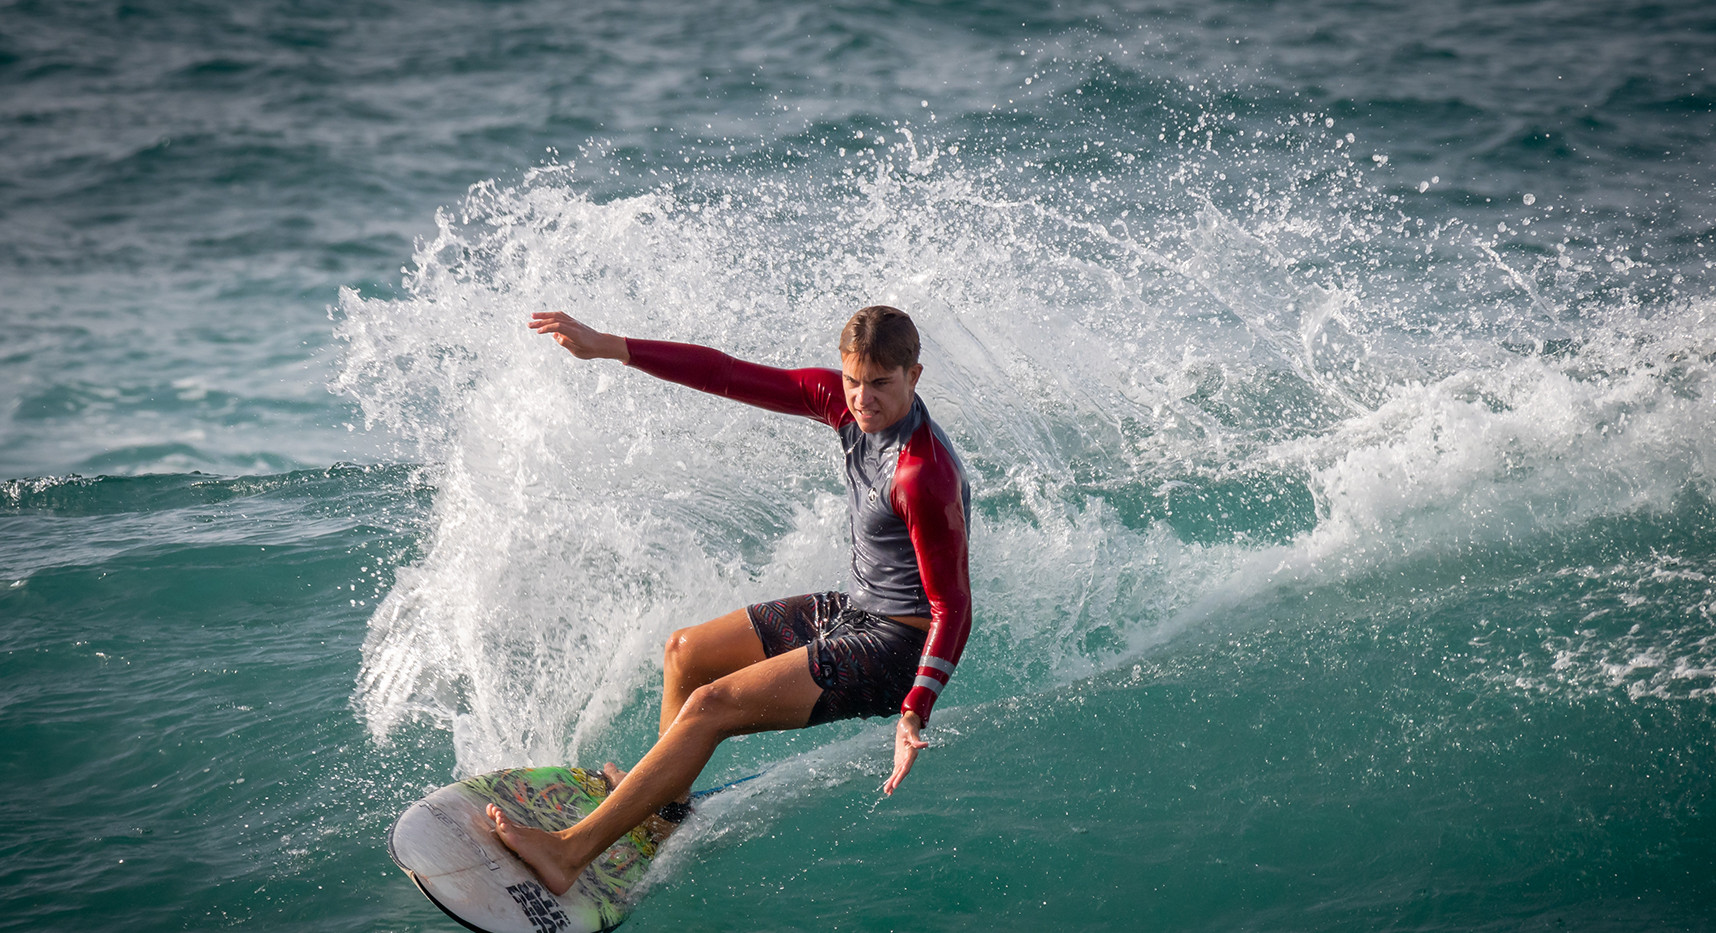 Surf's Up - Andrew Daw